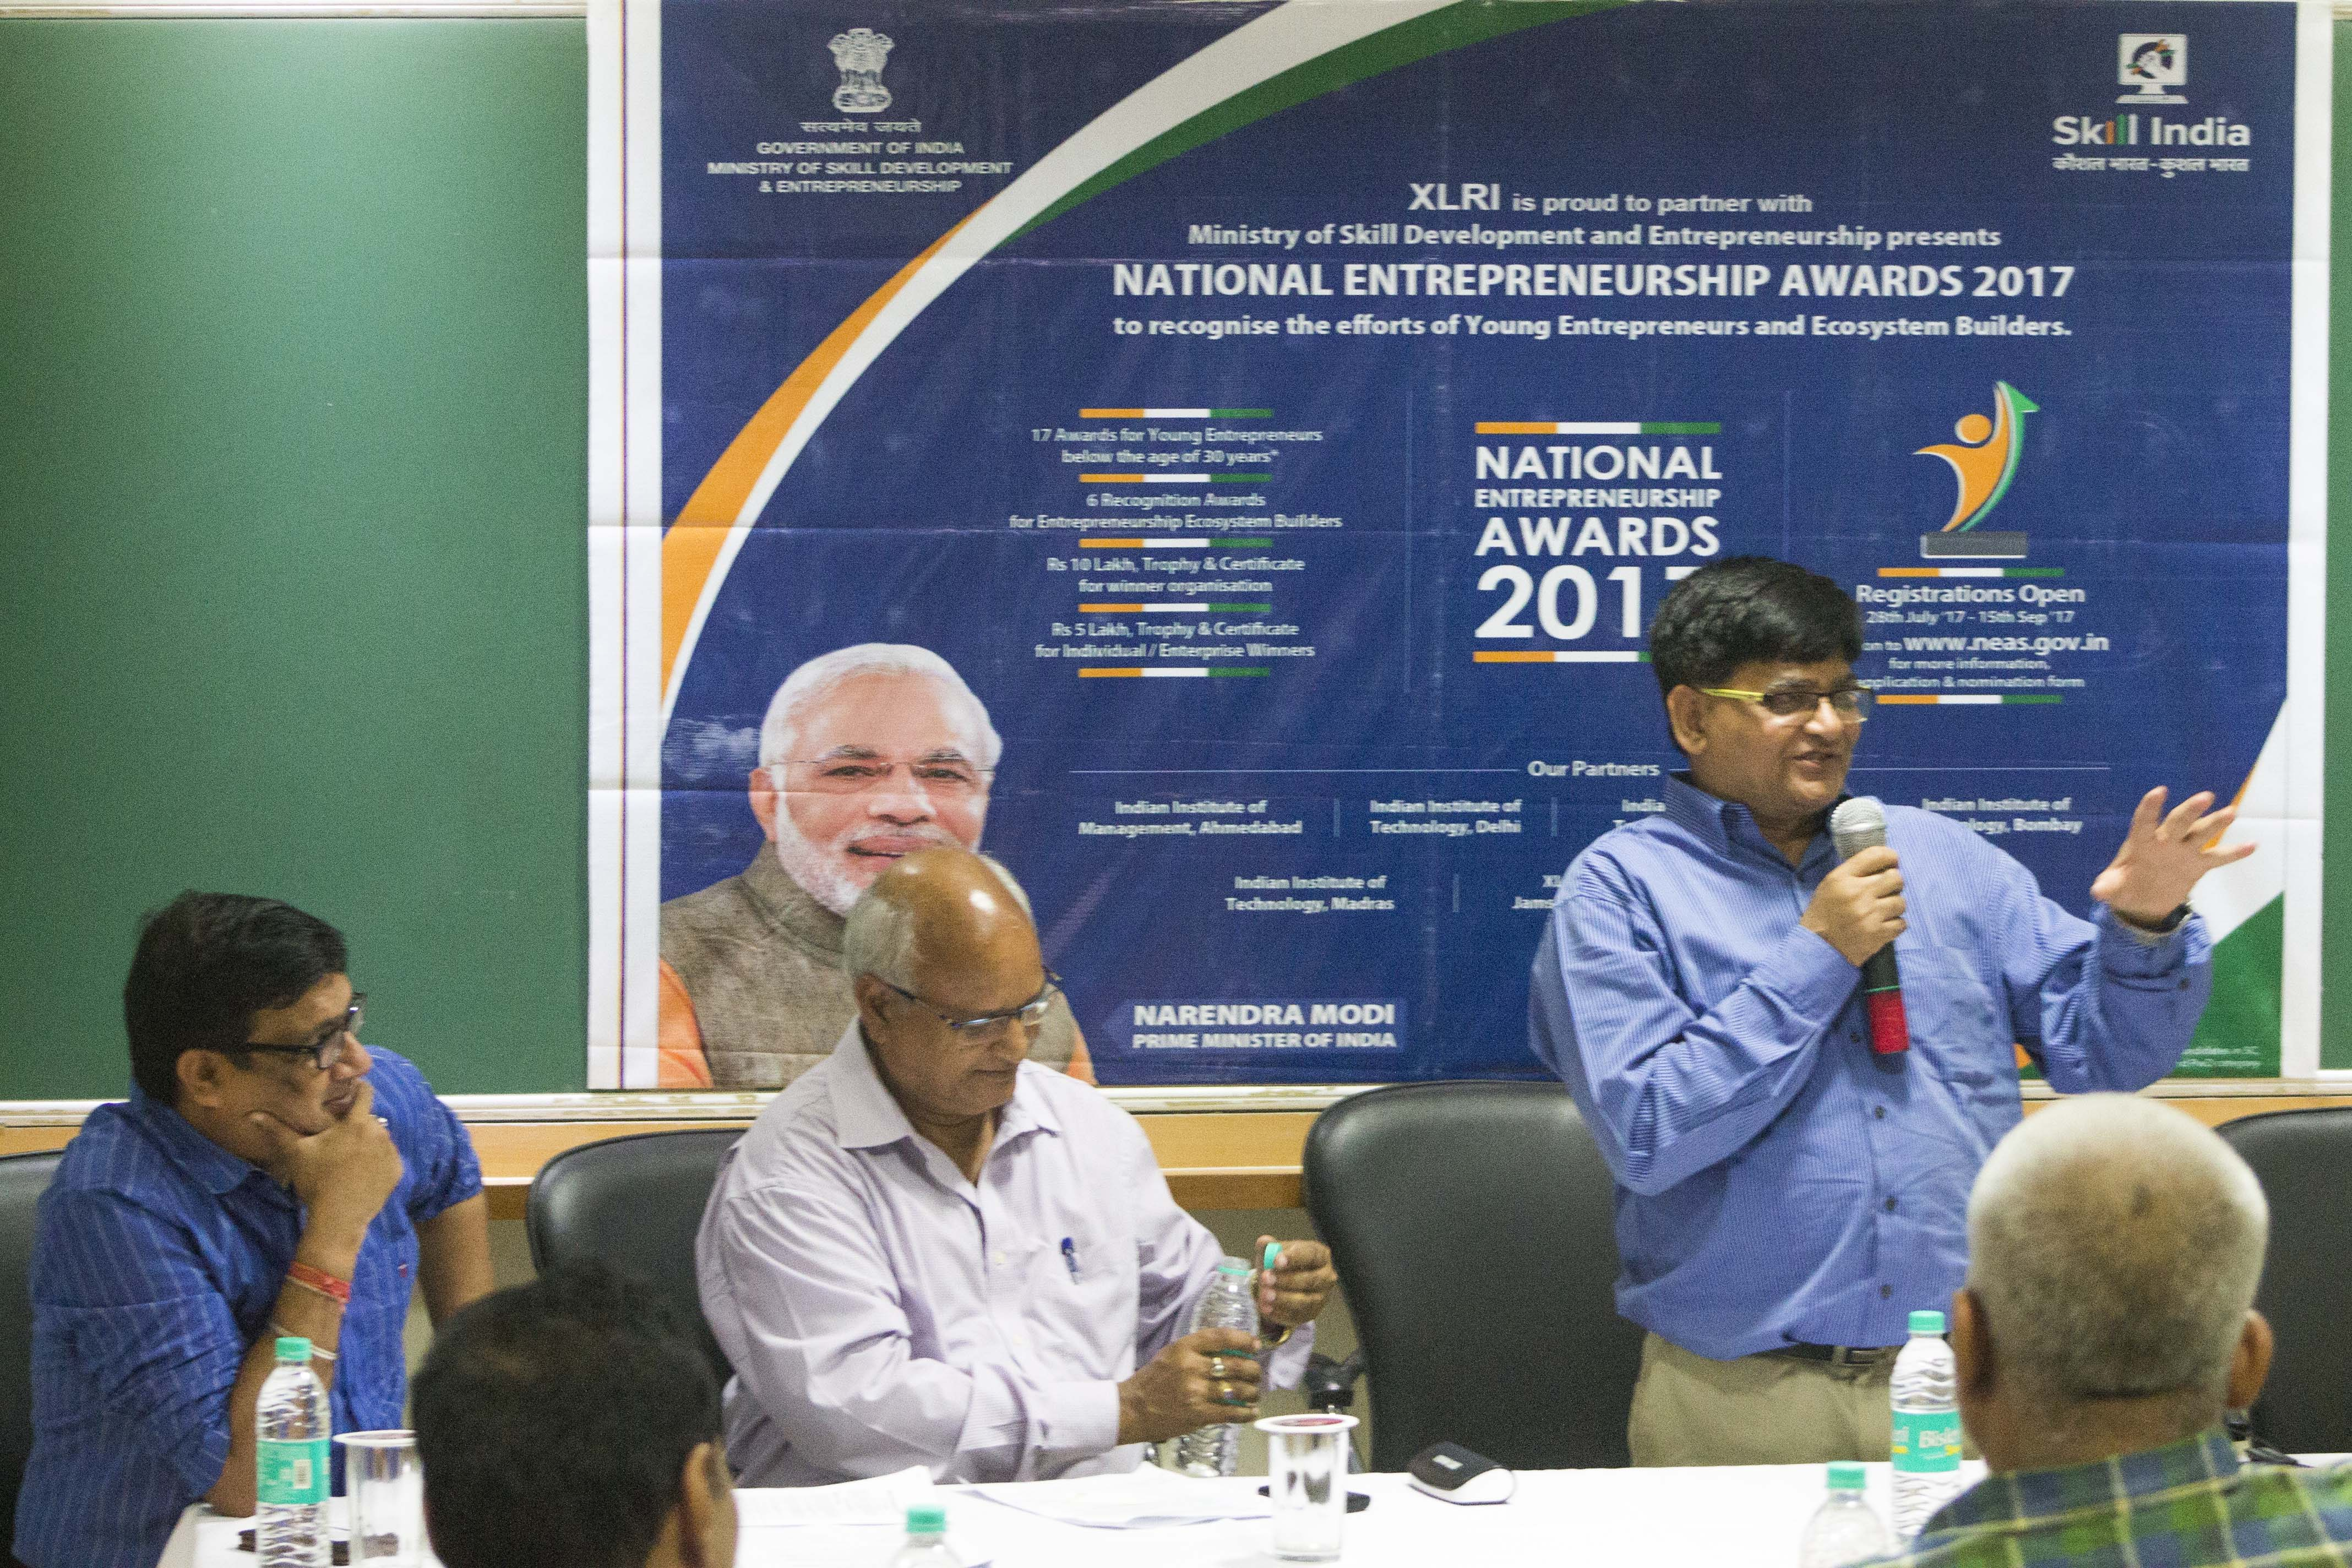 The Entrepreneurship Development Centre at XLRI with XIMB-XUB, organized a road show on the National Entrepreneurship Awards 2017.